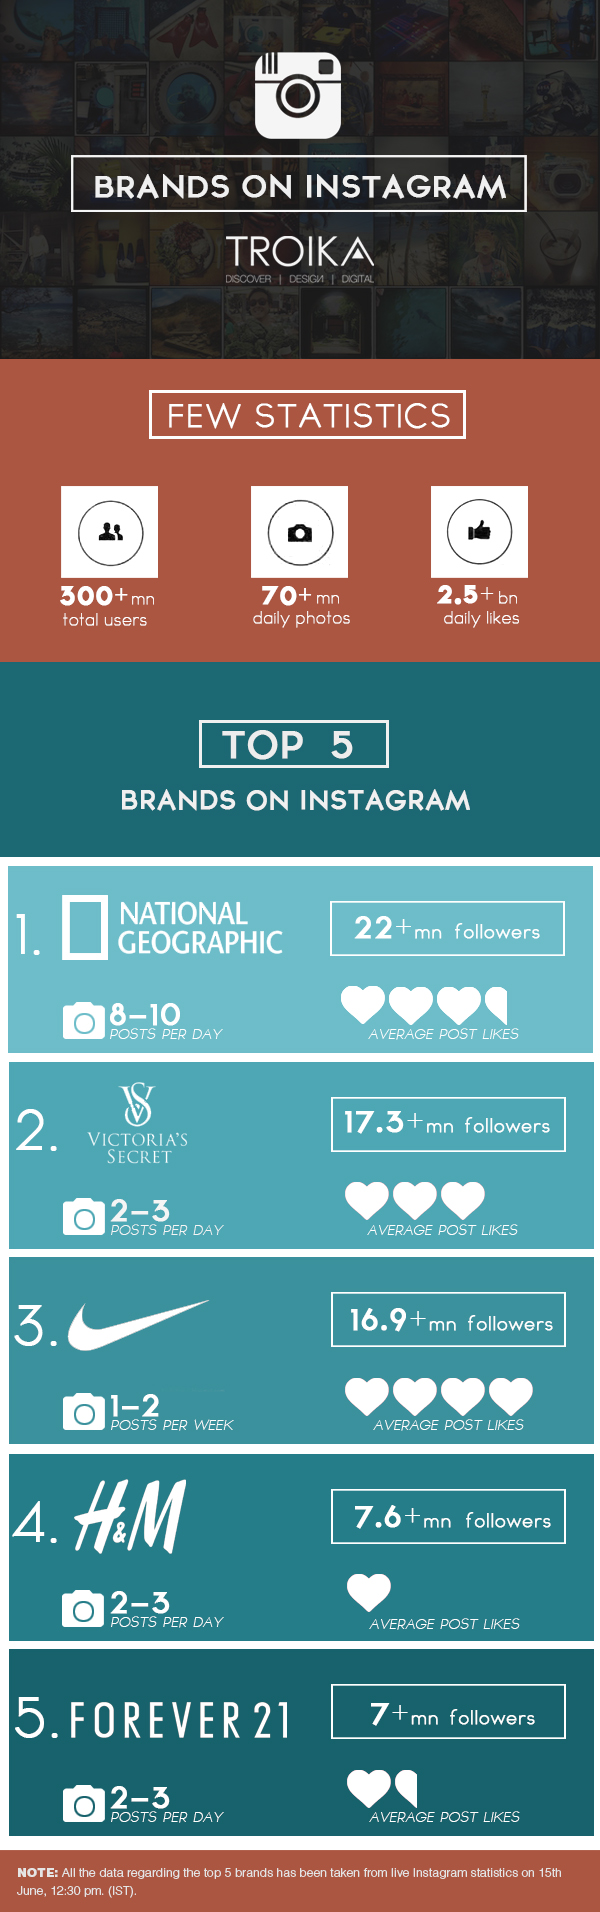 Top 5 Brands on Instagram